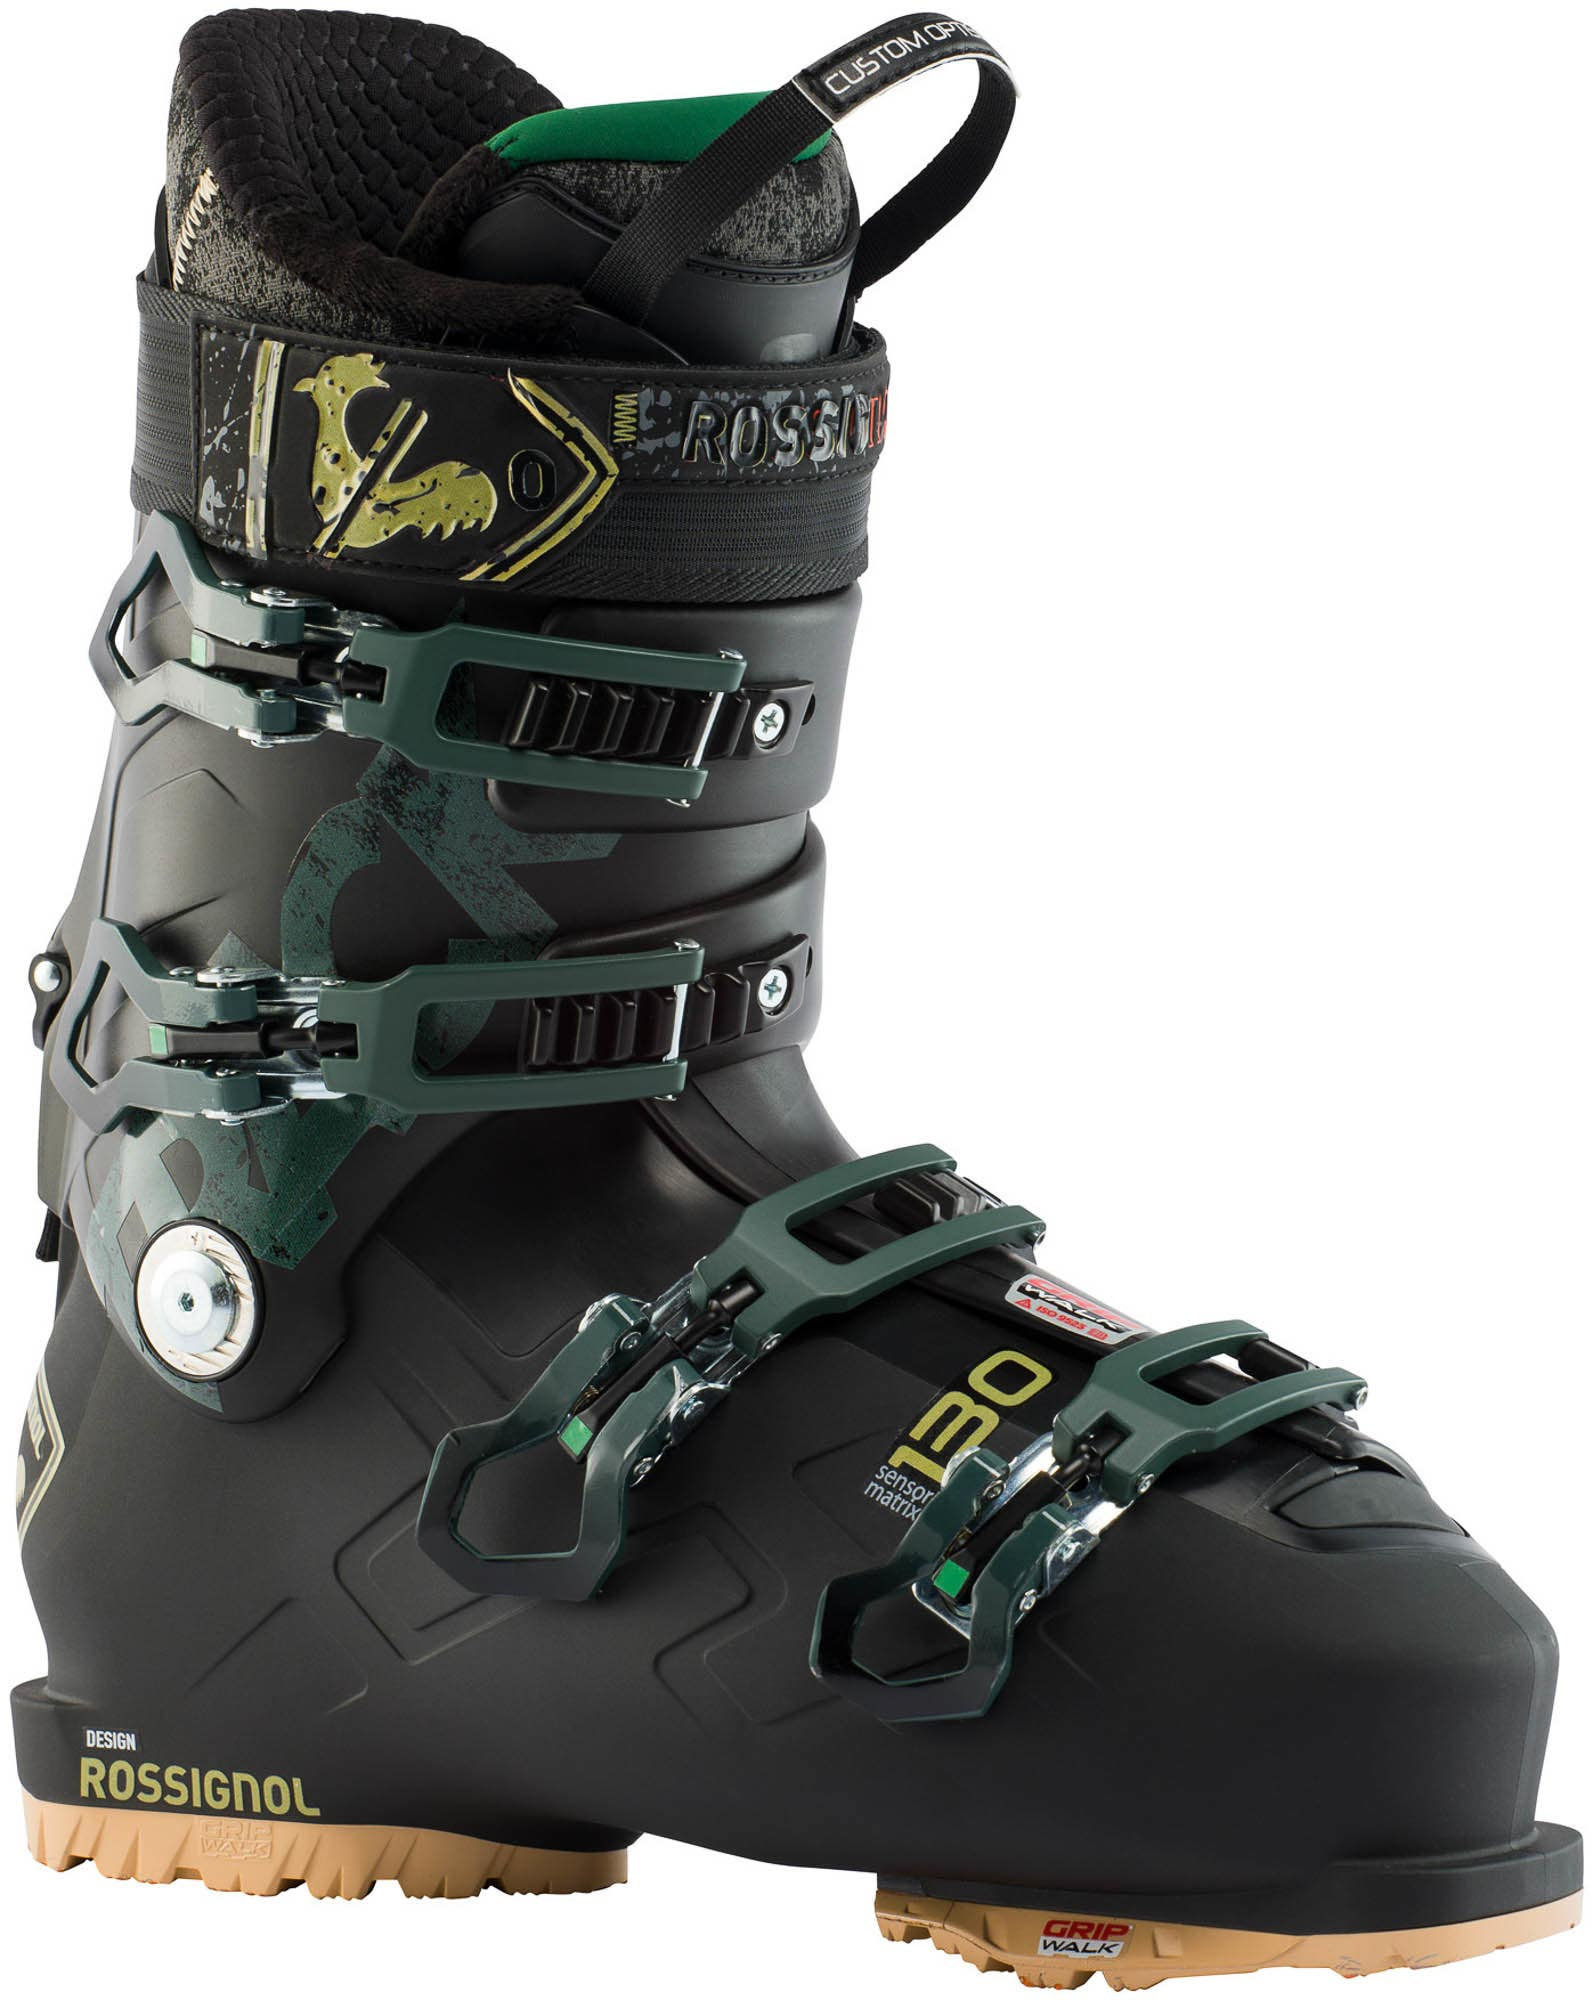 Image of Men's All Mountain Ski Boots Track 130 Gw